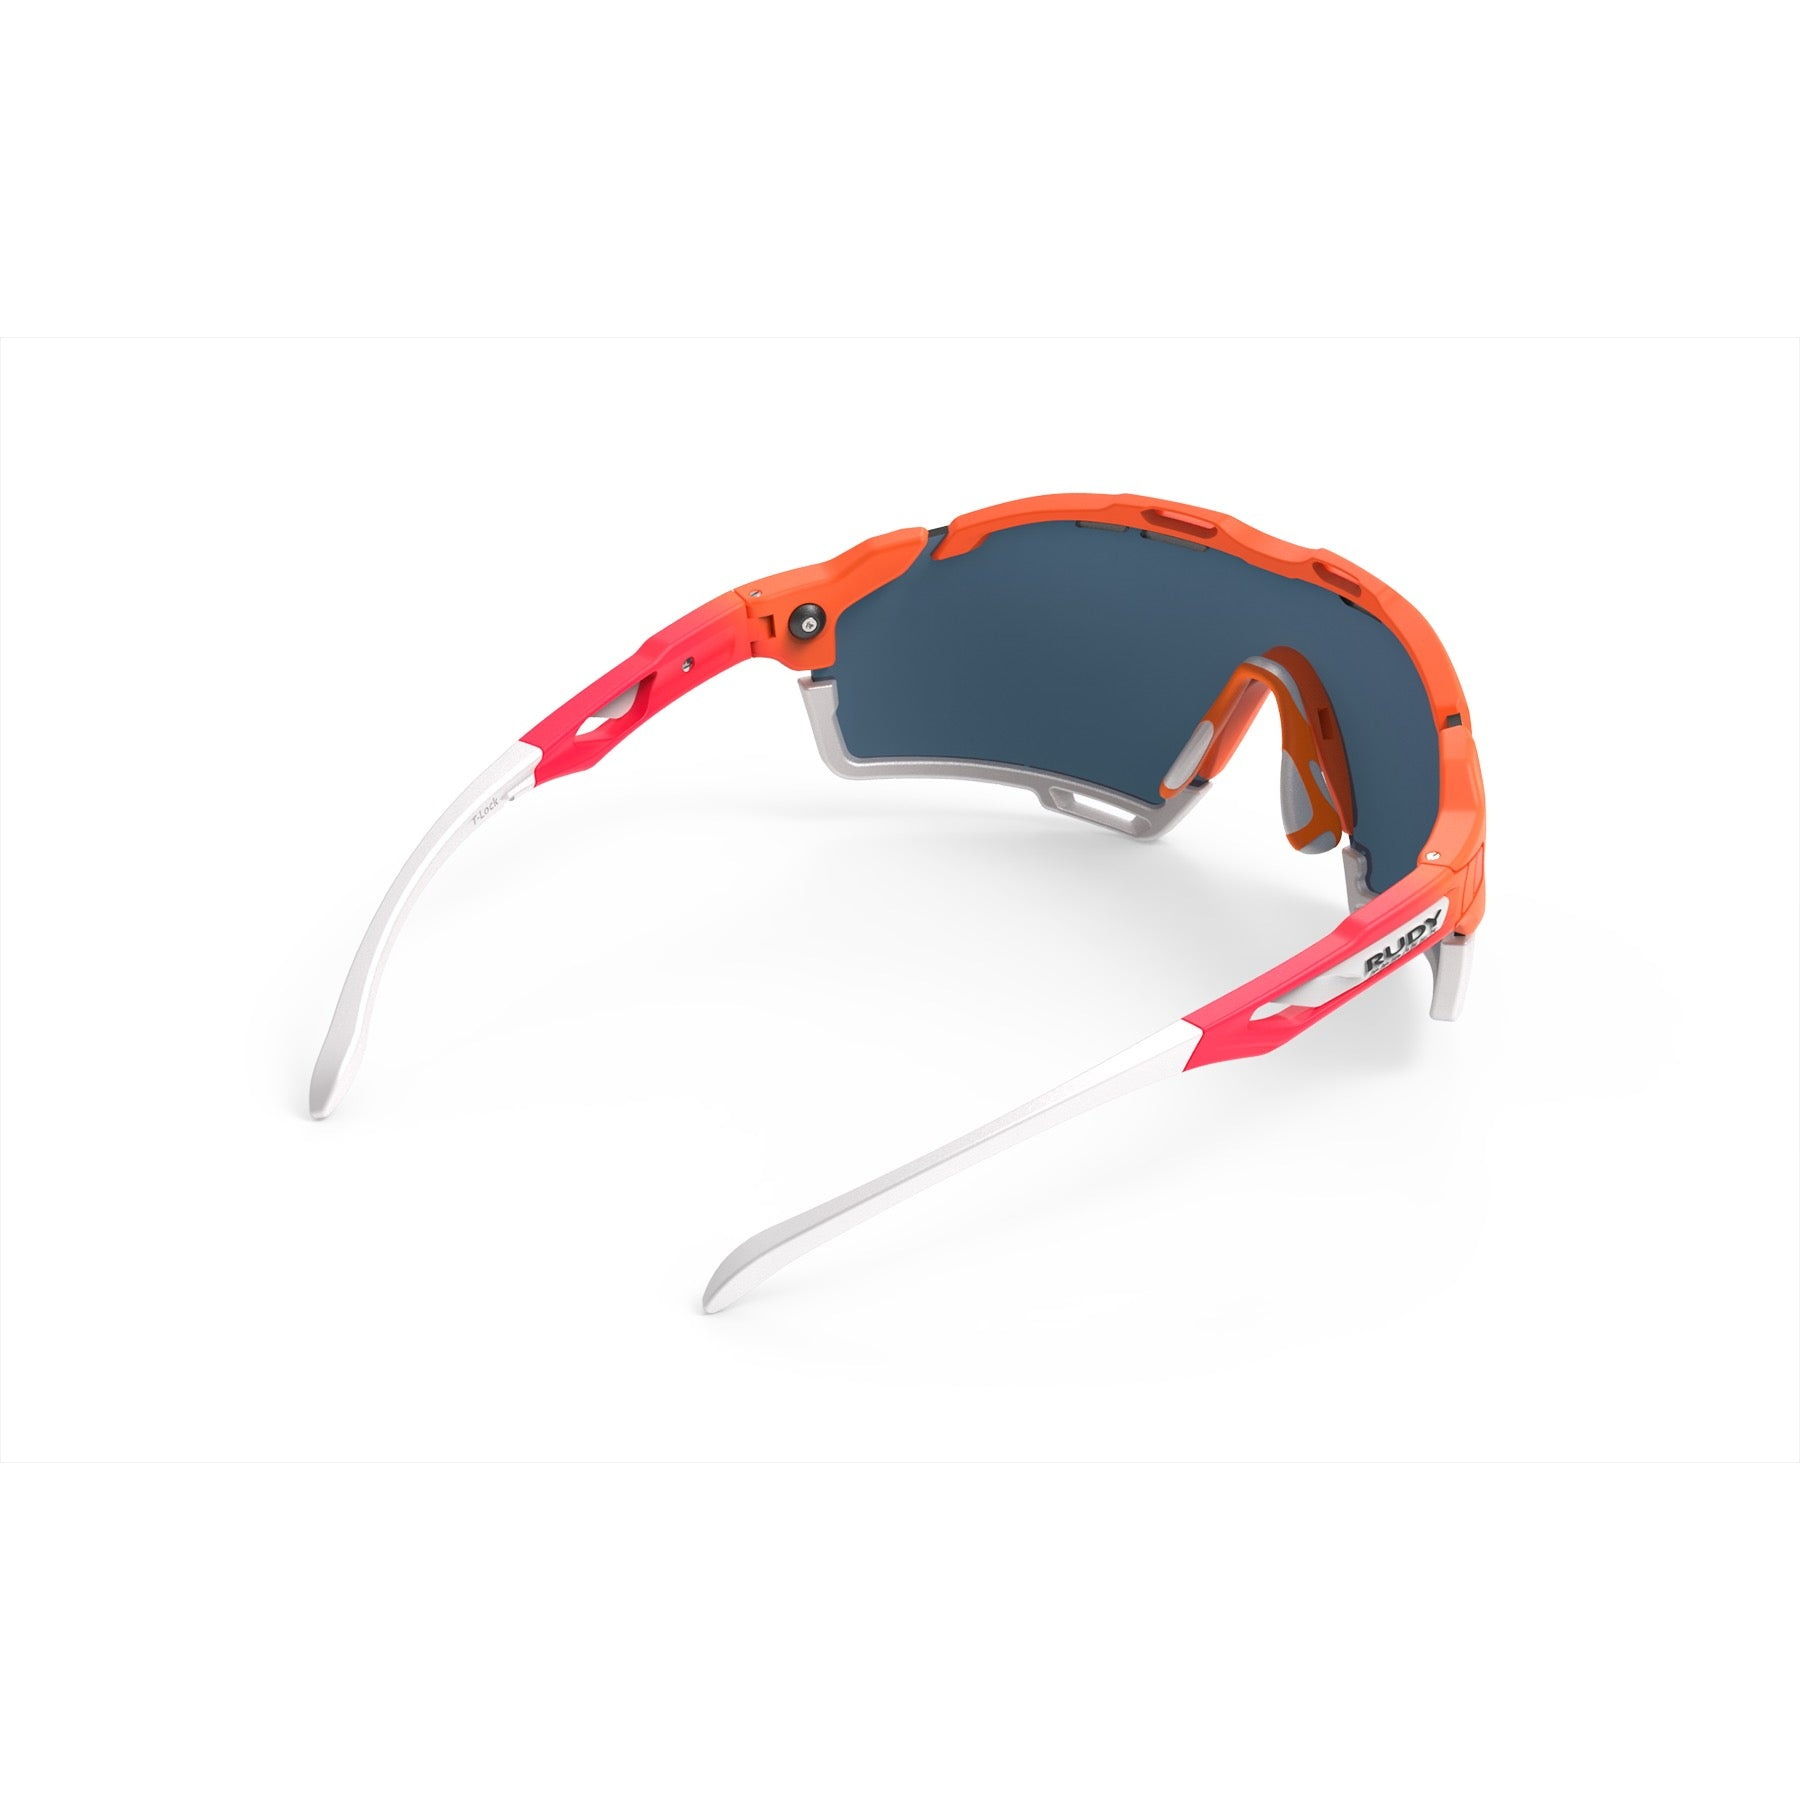 Rudy Project - Cutline - frame color: Mandarin Fade Coral - lens color: Multilaser Red - Bumper Color: White - photo angle: Top Back Angle Variant Hover Image